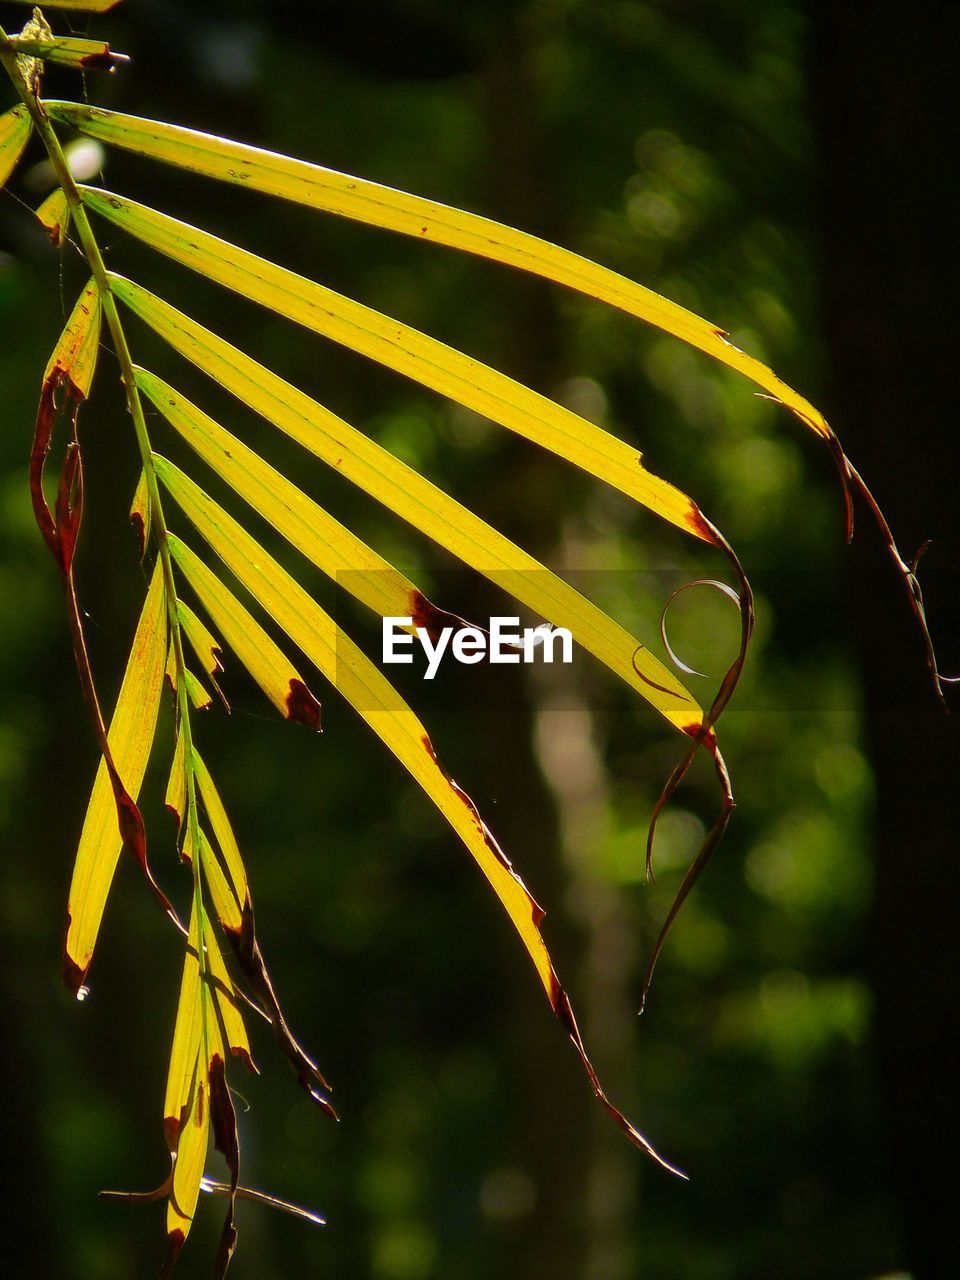 focus on foreground, plant, growth, beauty in nature, close-up, nature, no people, plant part, leaf, day, outdoors, green color, fragility, vulnerability, sunlight, selective focus, tree, freshness, water, blade of grass